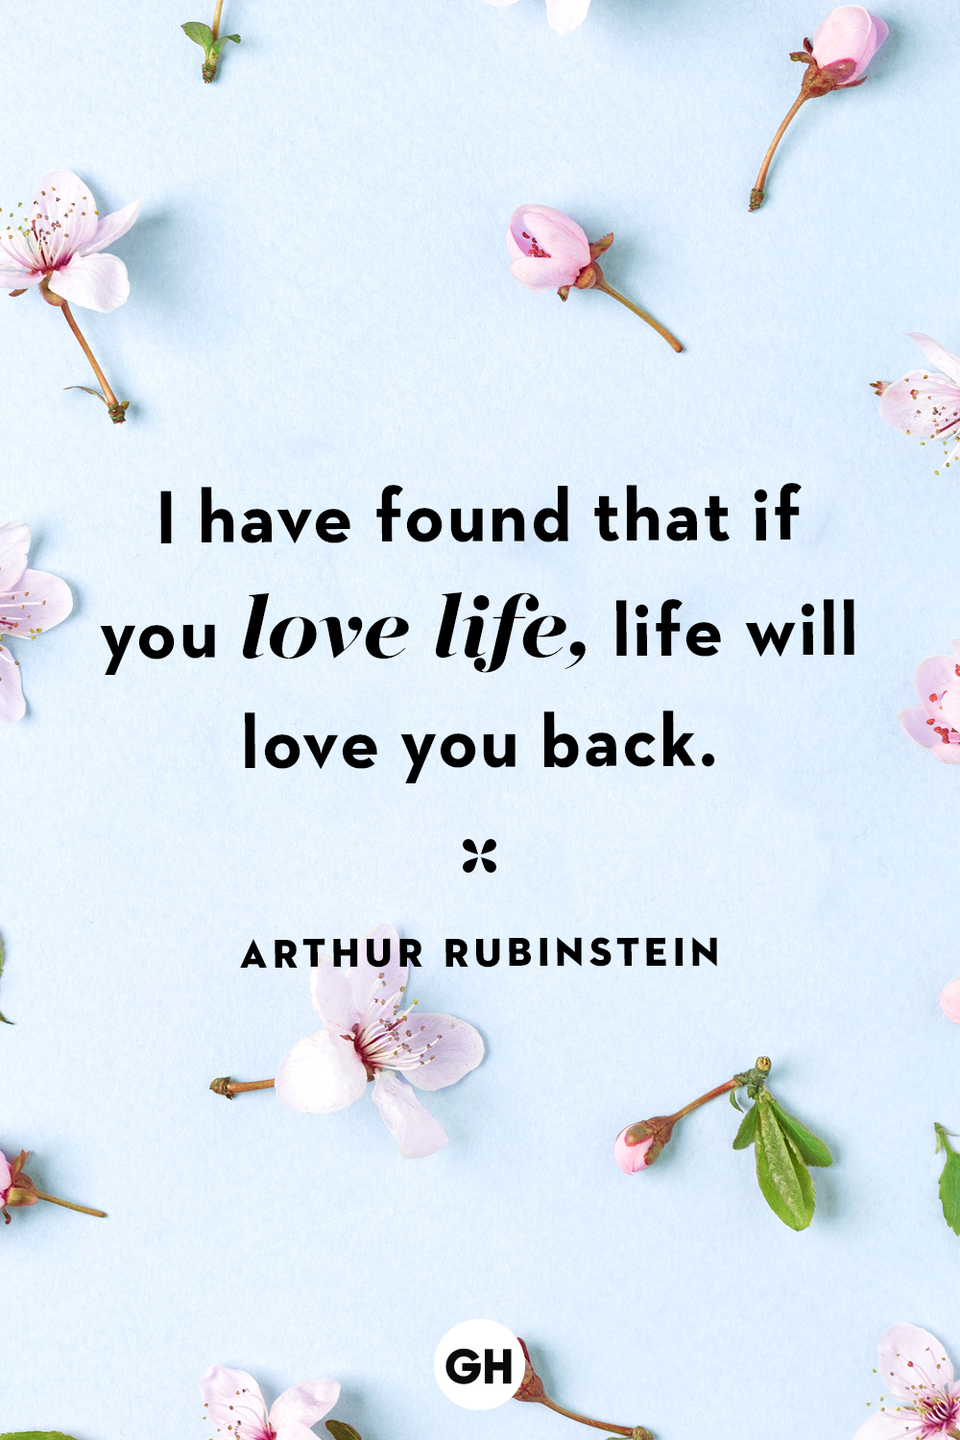 <p>I have found that if you love life, life will love you back. </p>